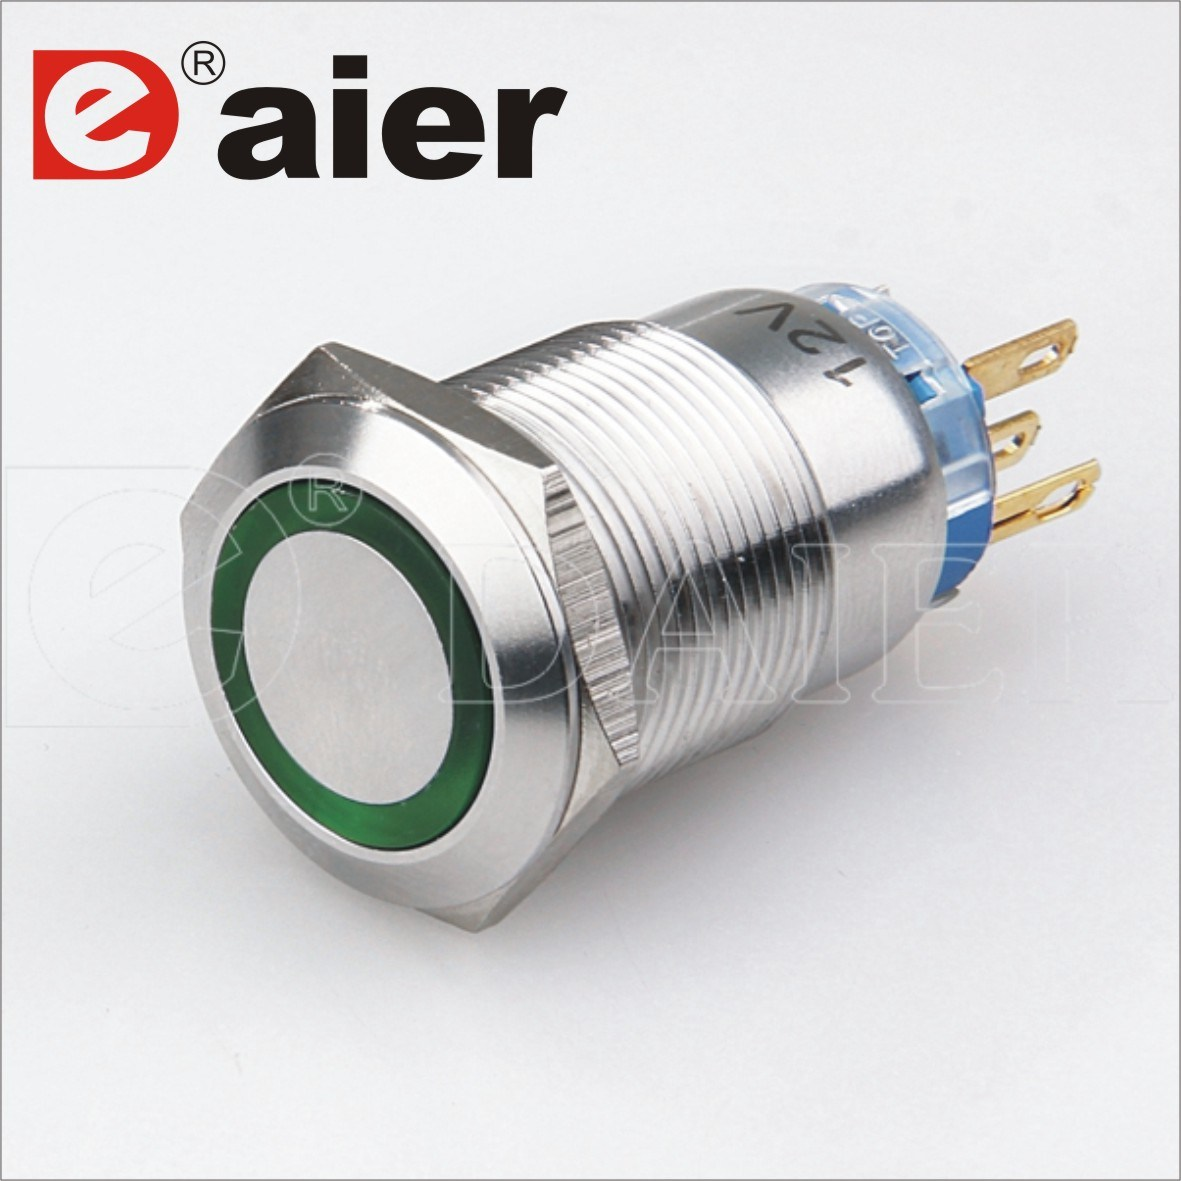 China Electrical 5 Pin Momentary 19mm LED Metal Push Button Switch ...